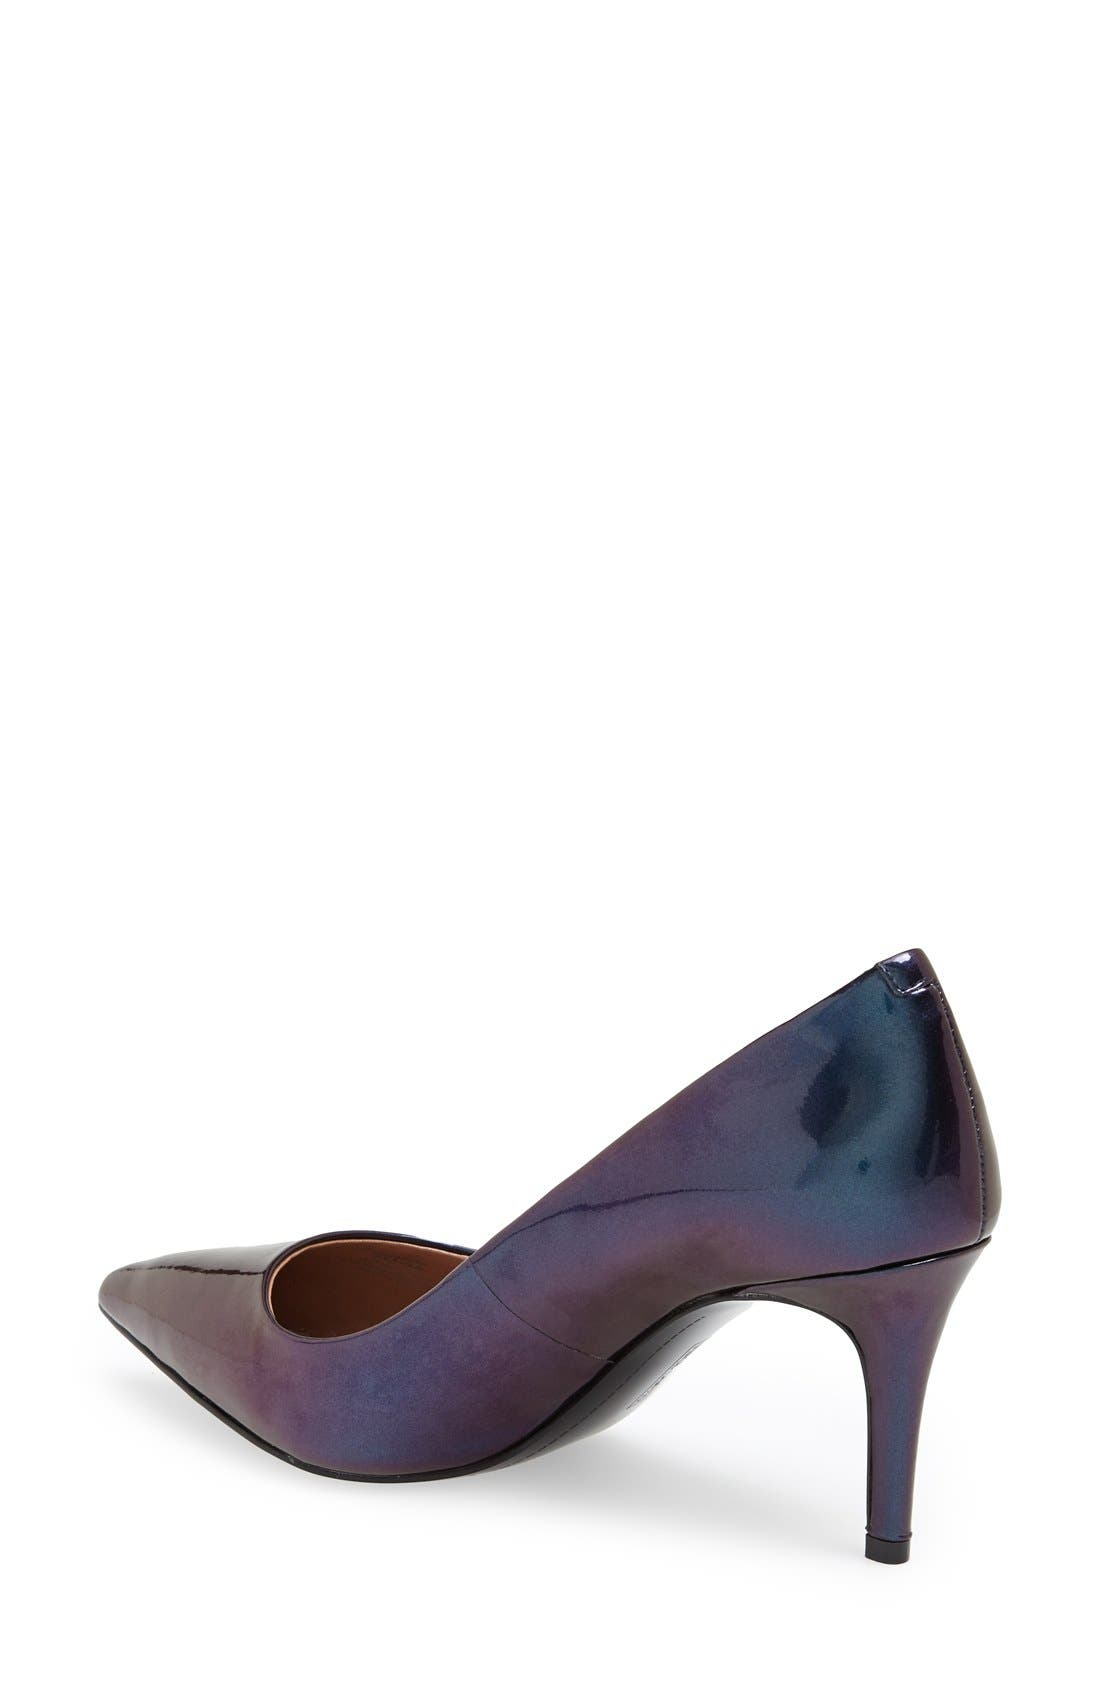 Alternate Image 2  - Vince Camuto 'Cassina' Pointy Toe Pump (Women)